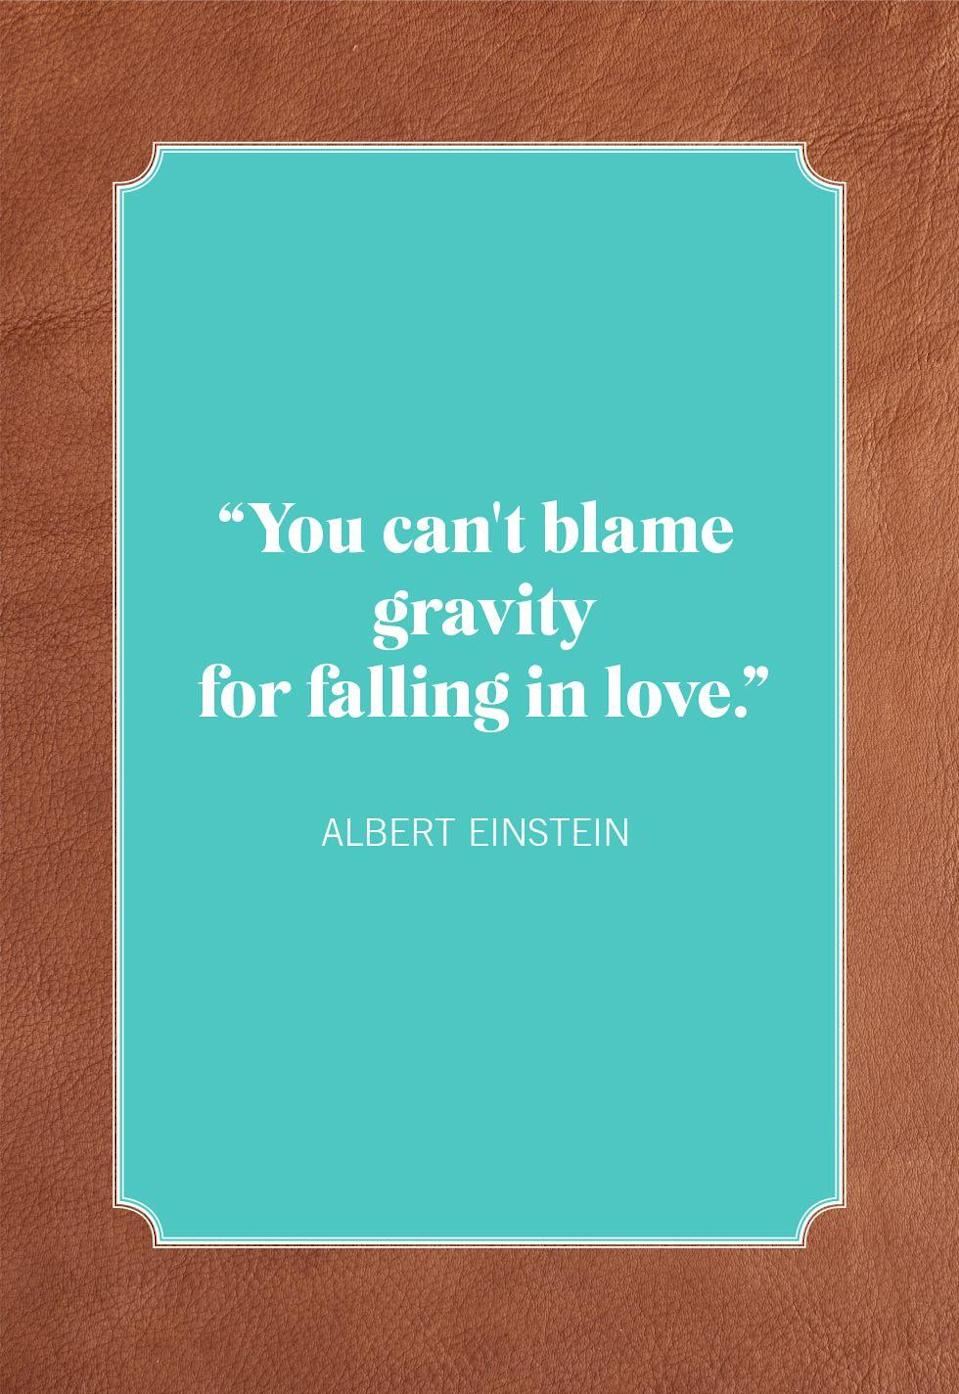 "<p>""You can't blame gravity for falling in love.""</p>"